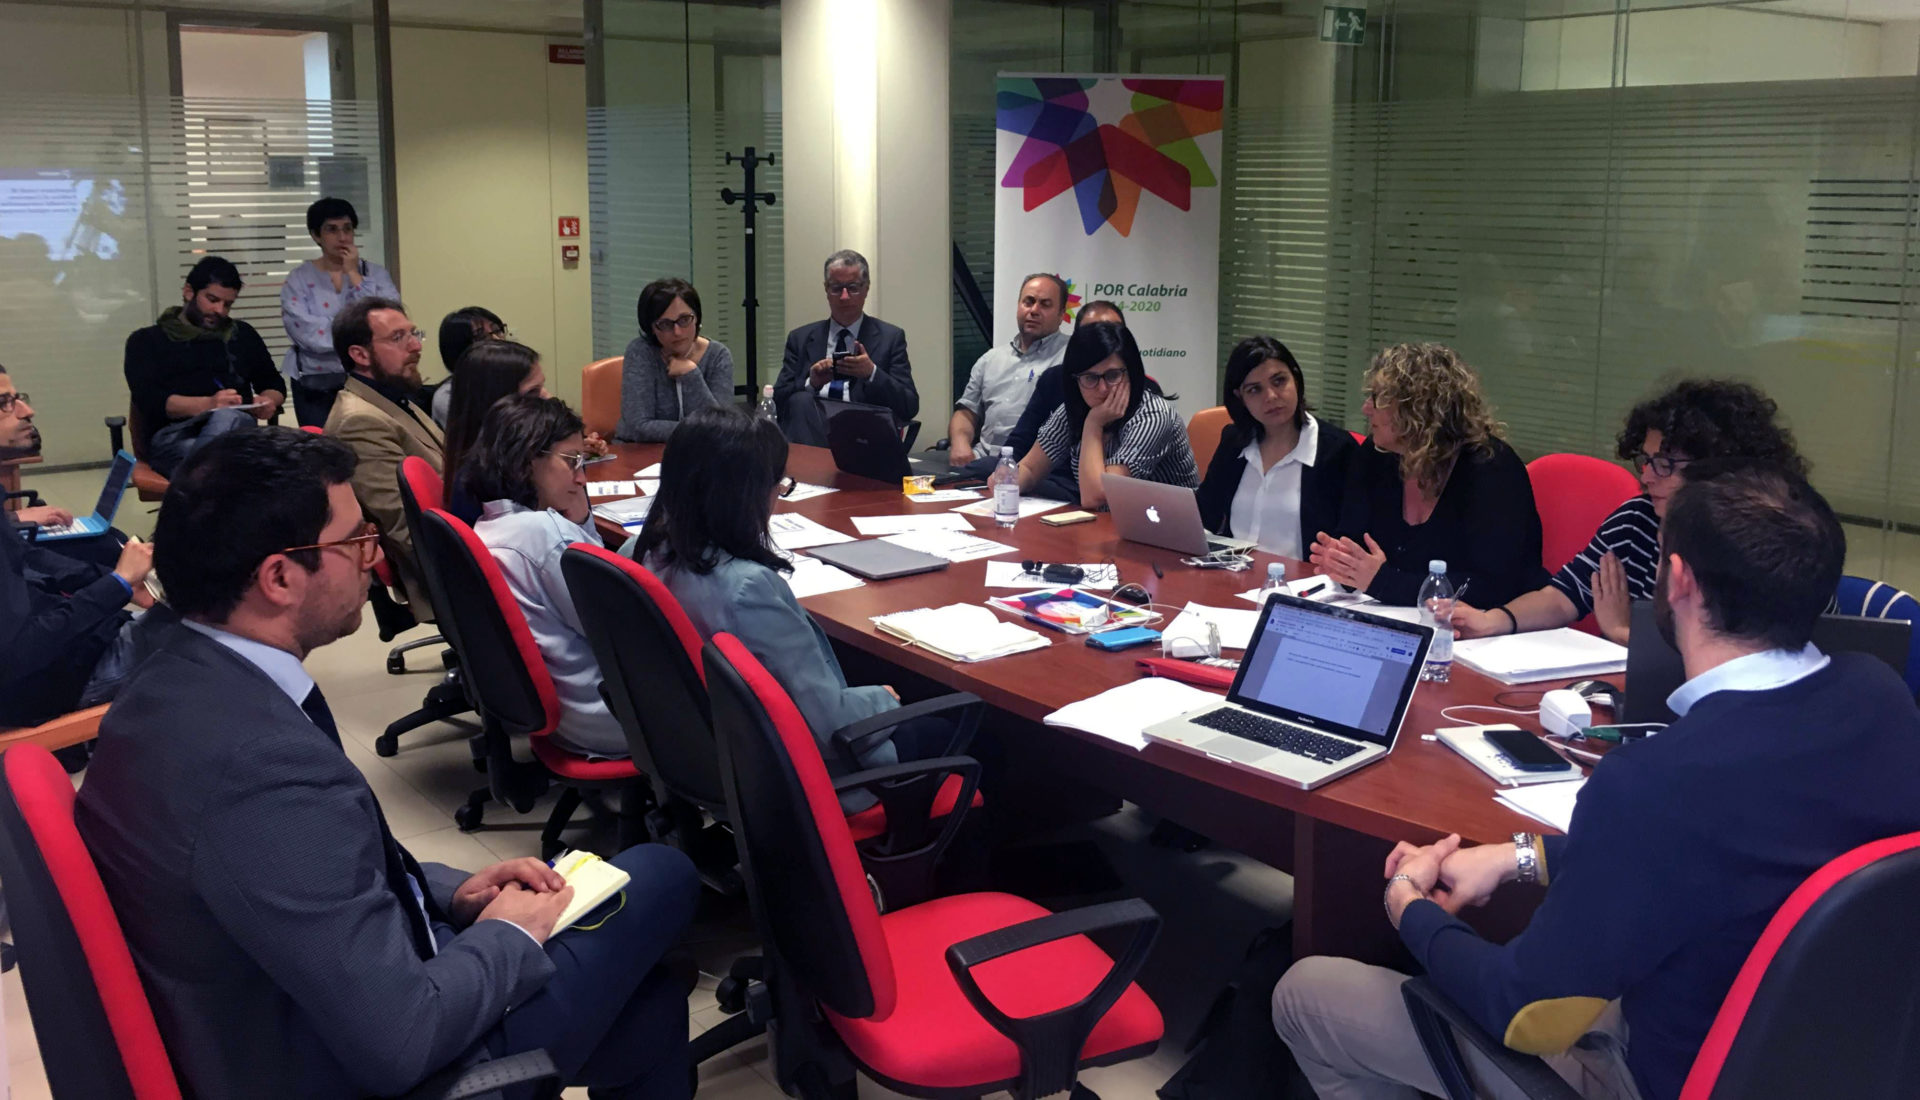 PERCEIVE's workshop with Calabria Region: a good practice for Cohesion Policy communication